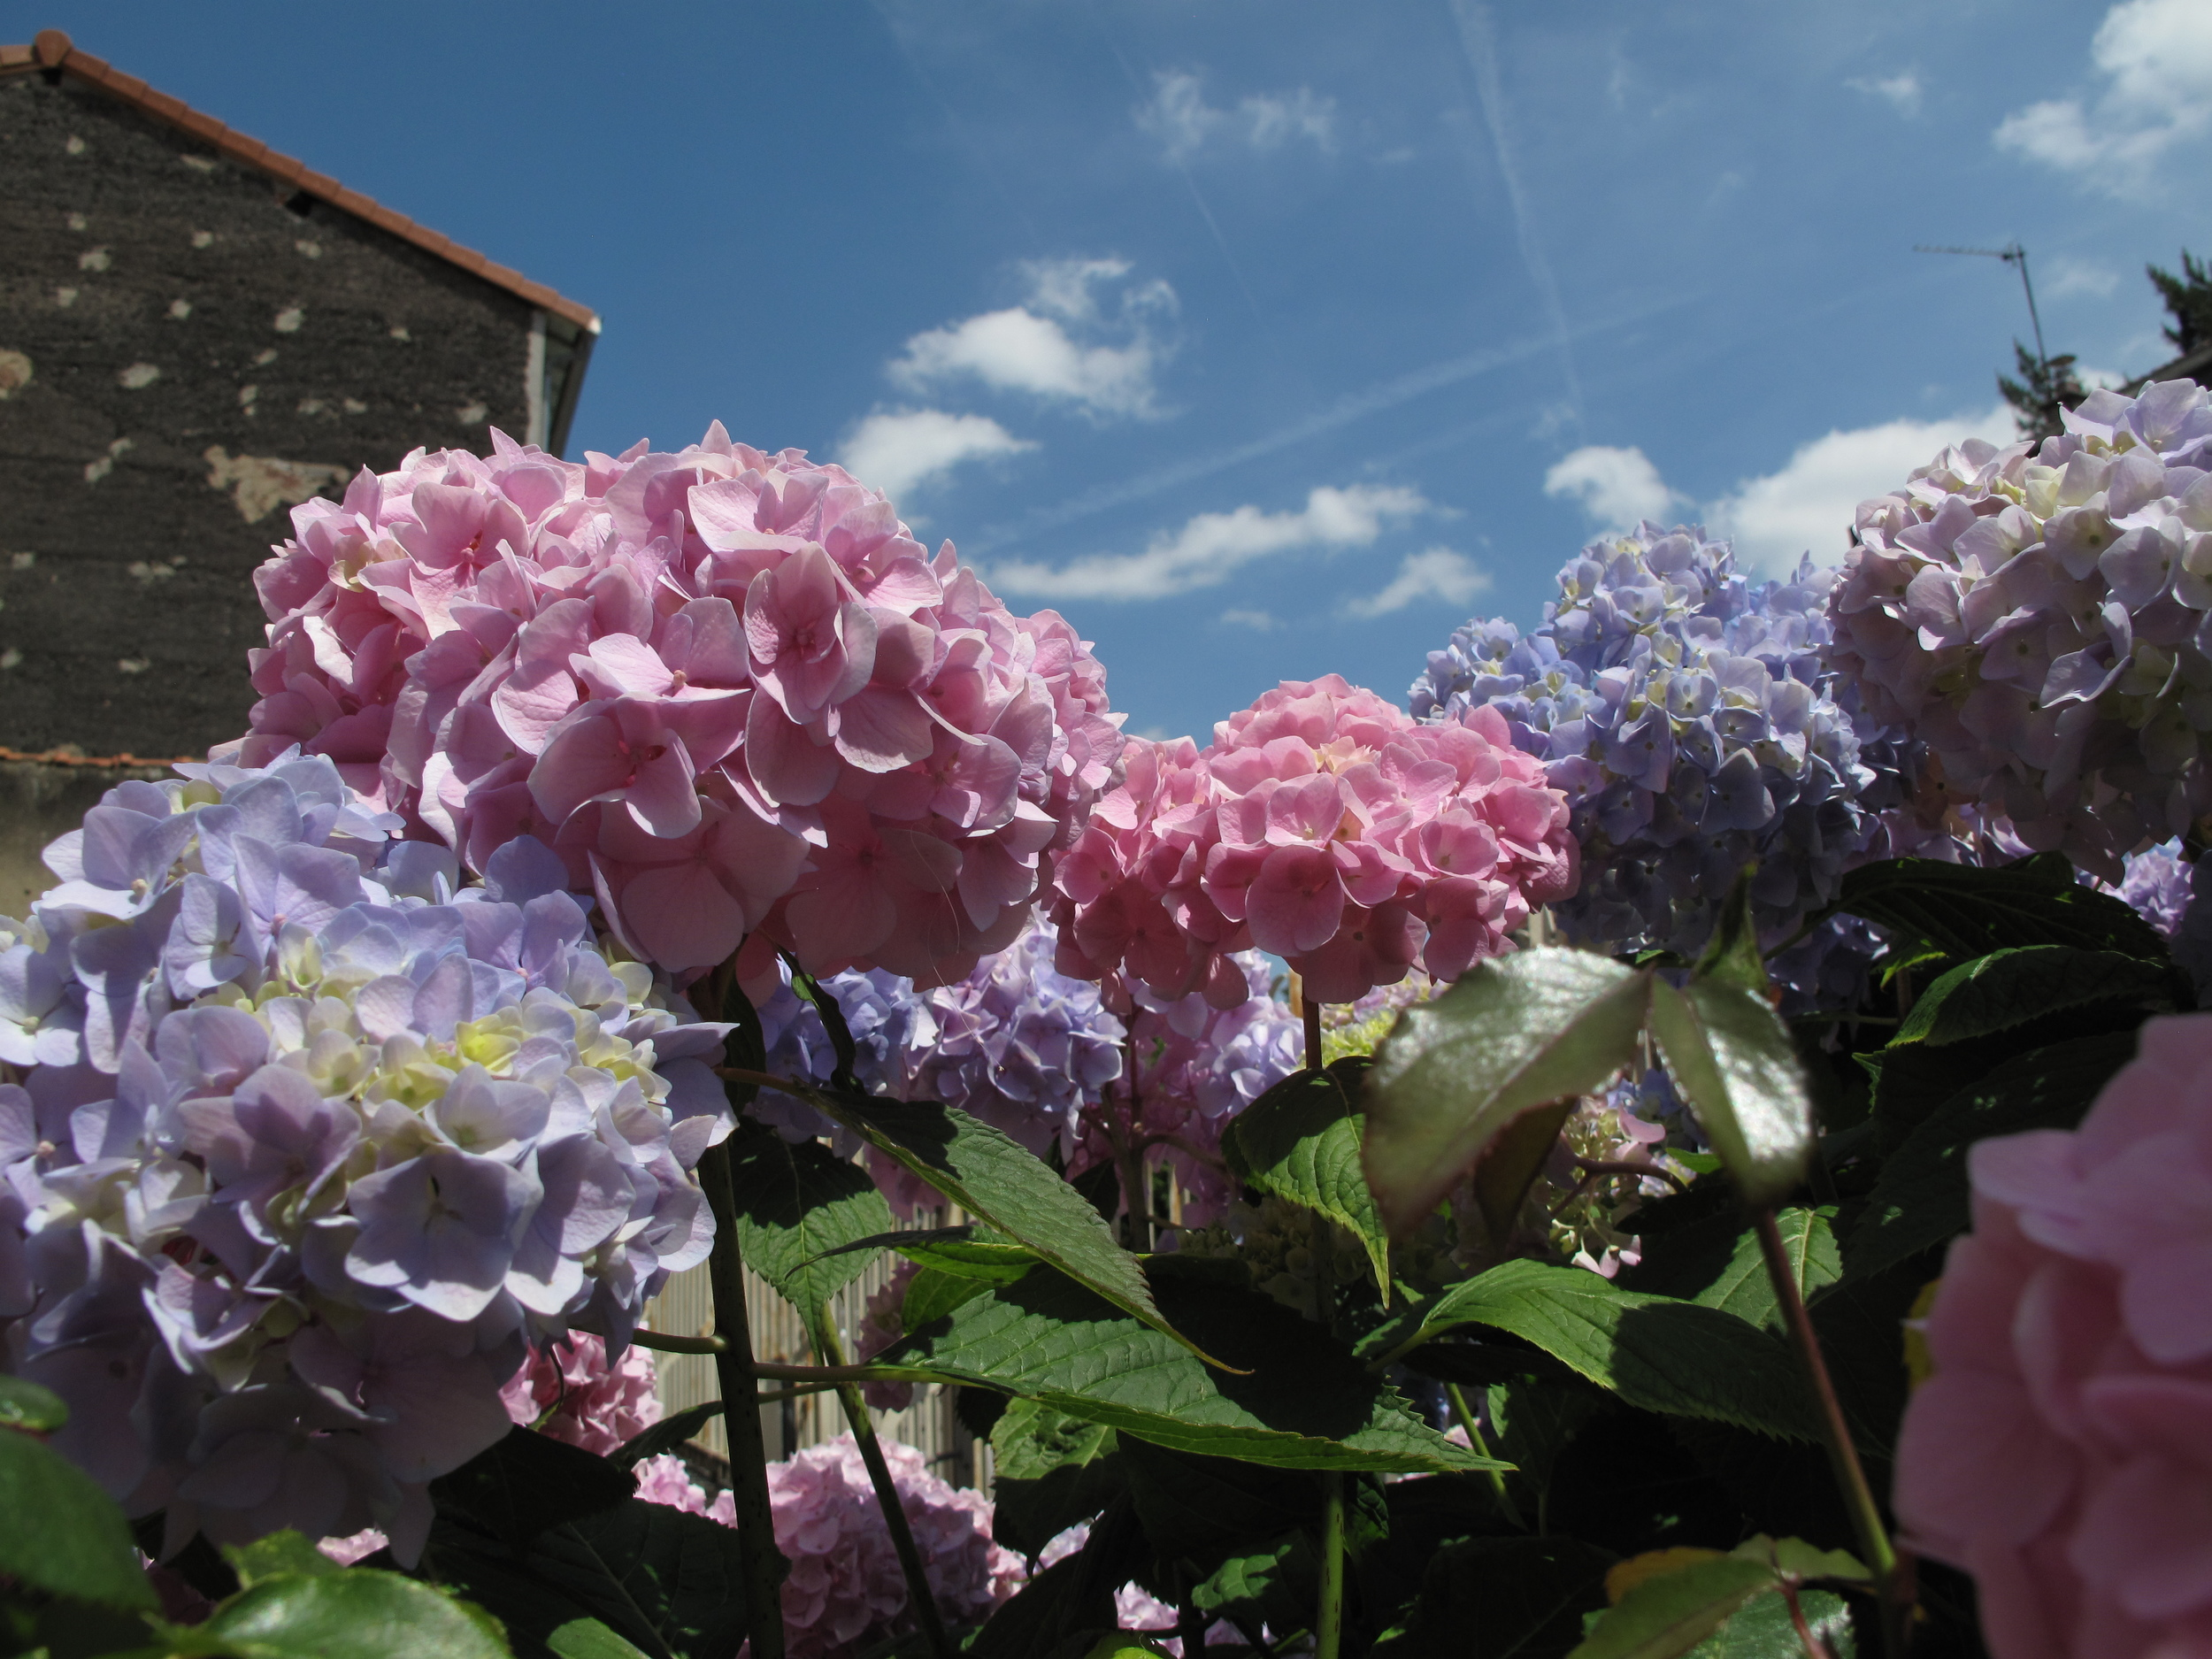 Hydrangea flowers and blue skies.